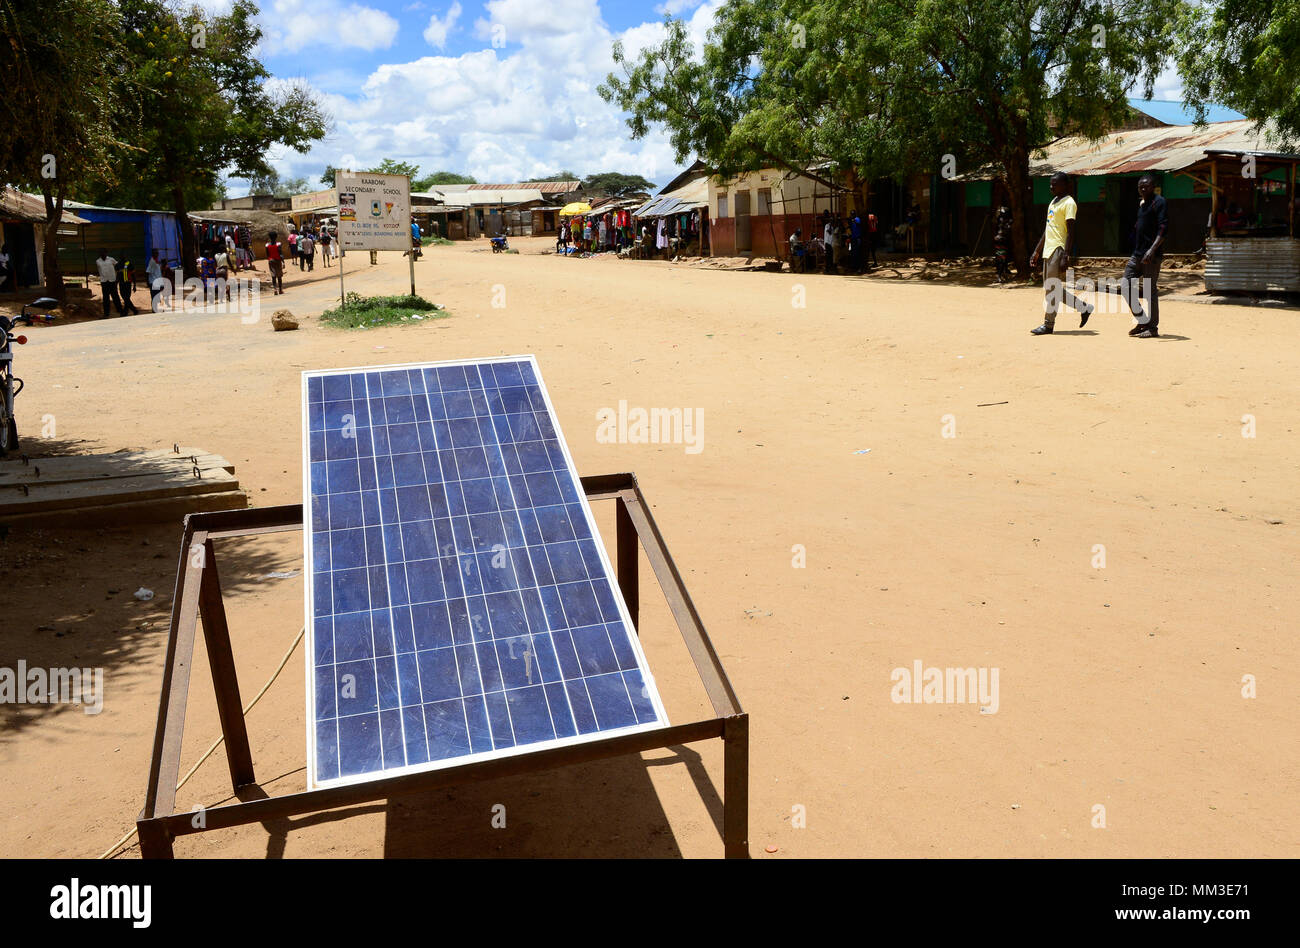 UGANDA, Karamoja, Kaabong, Karamojong pastoral tribe, solar panels for power generation and battery recharging - Stock Image